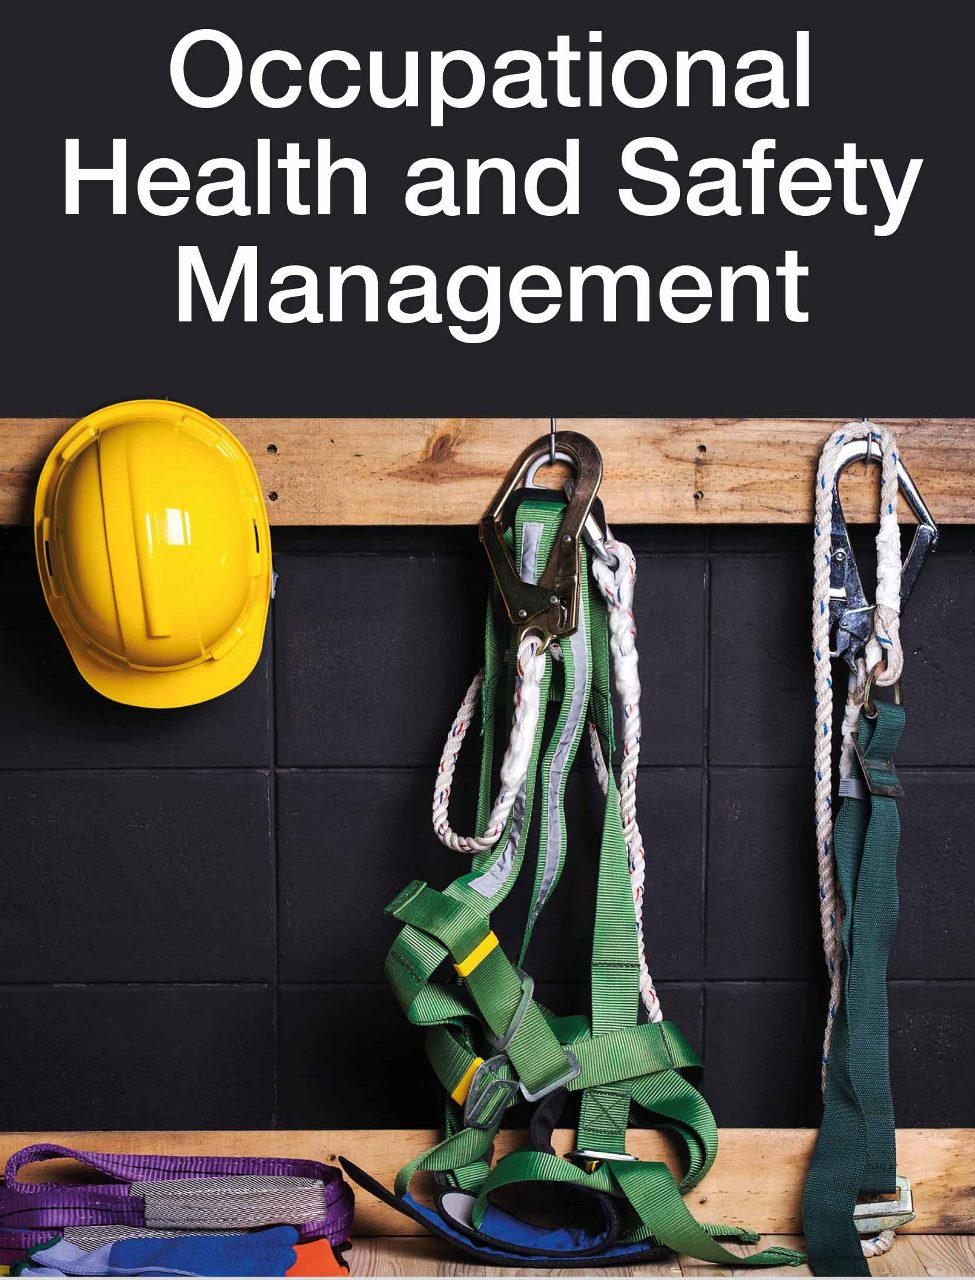 OHS003: Occupational Health, Safety and Environmental Awareness